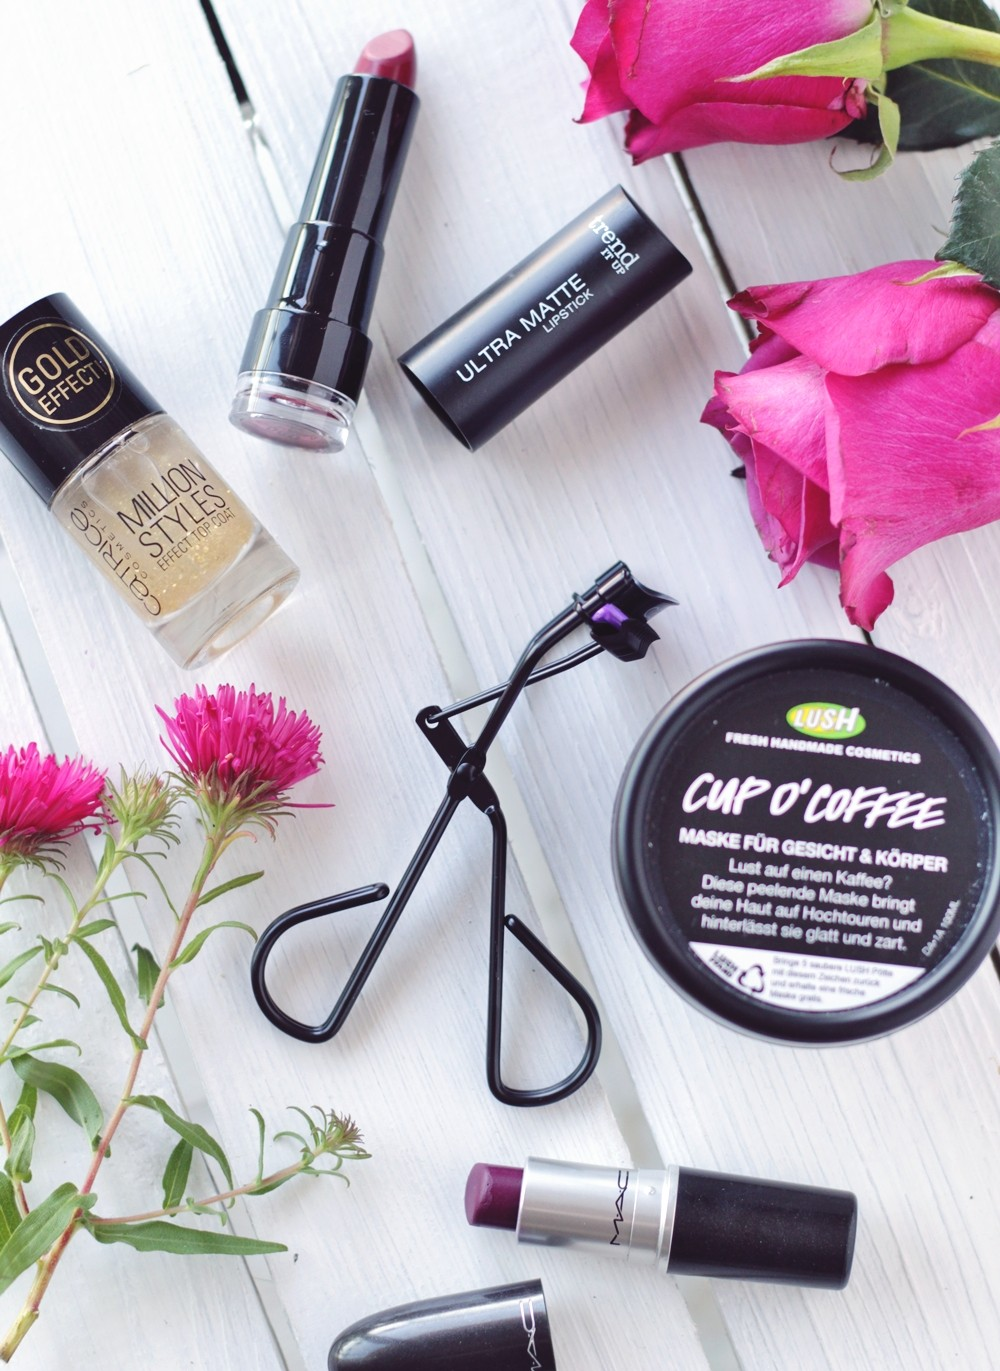 Holy Grails of beauty Lush Catrice MAC Trend it up 1